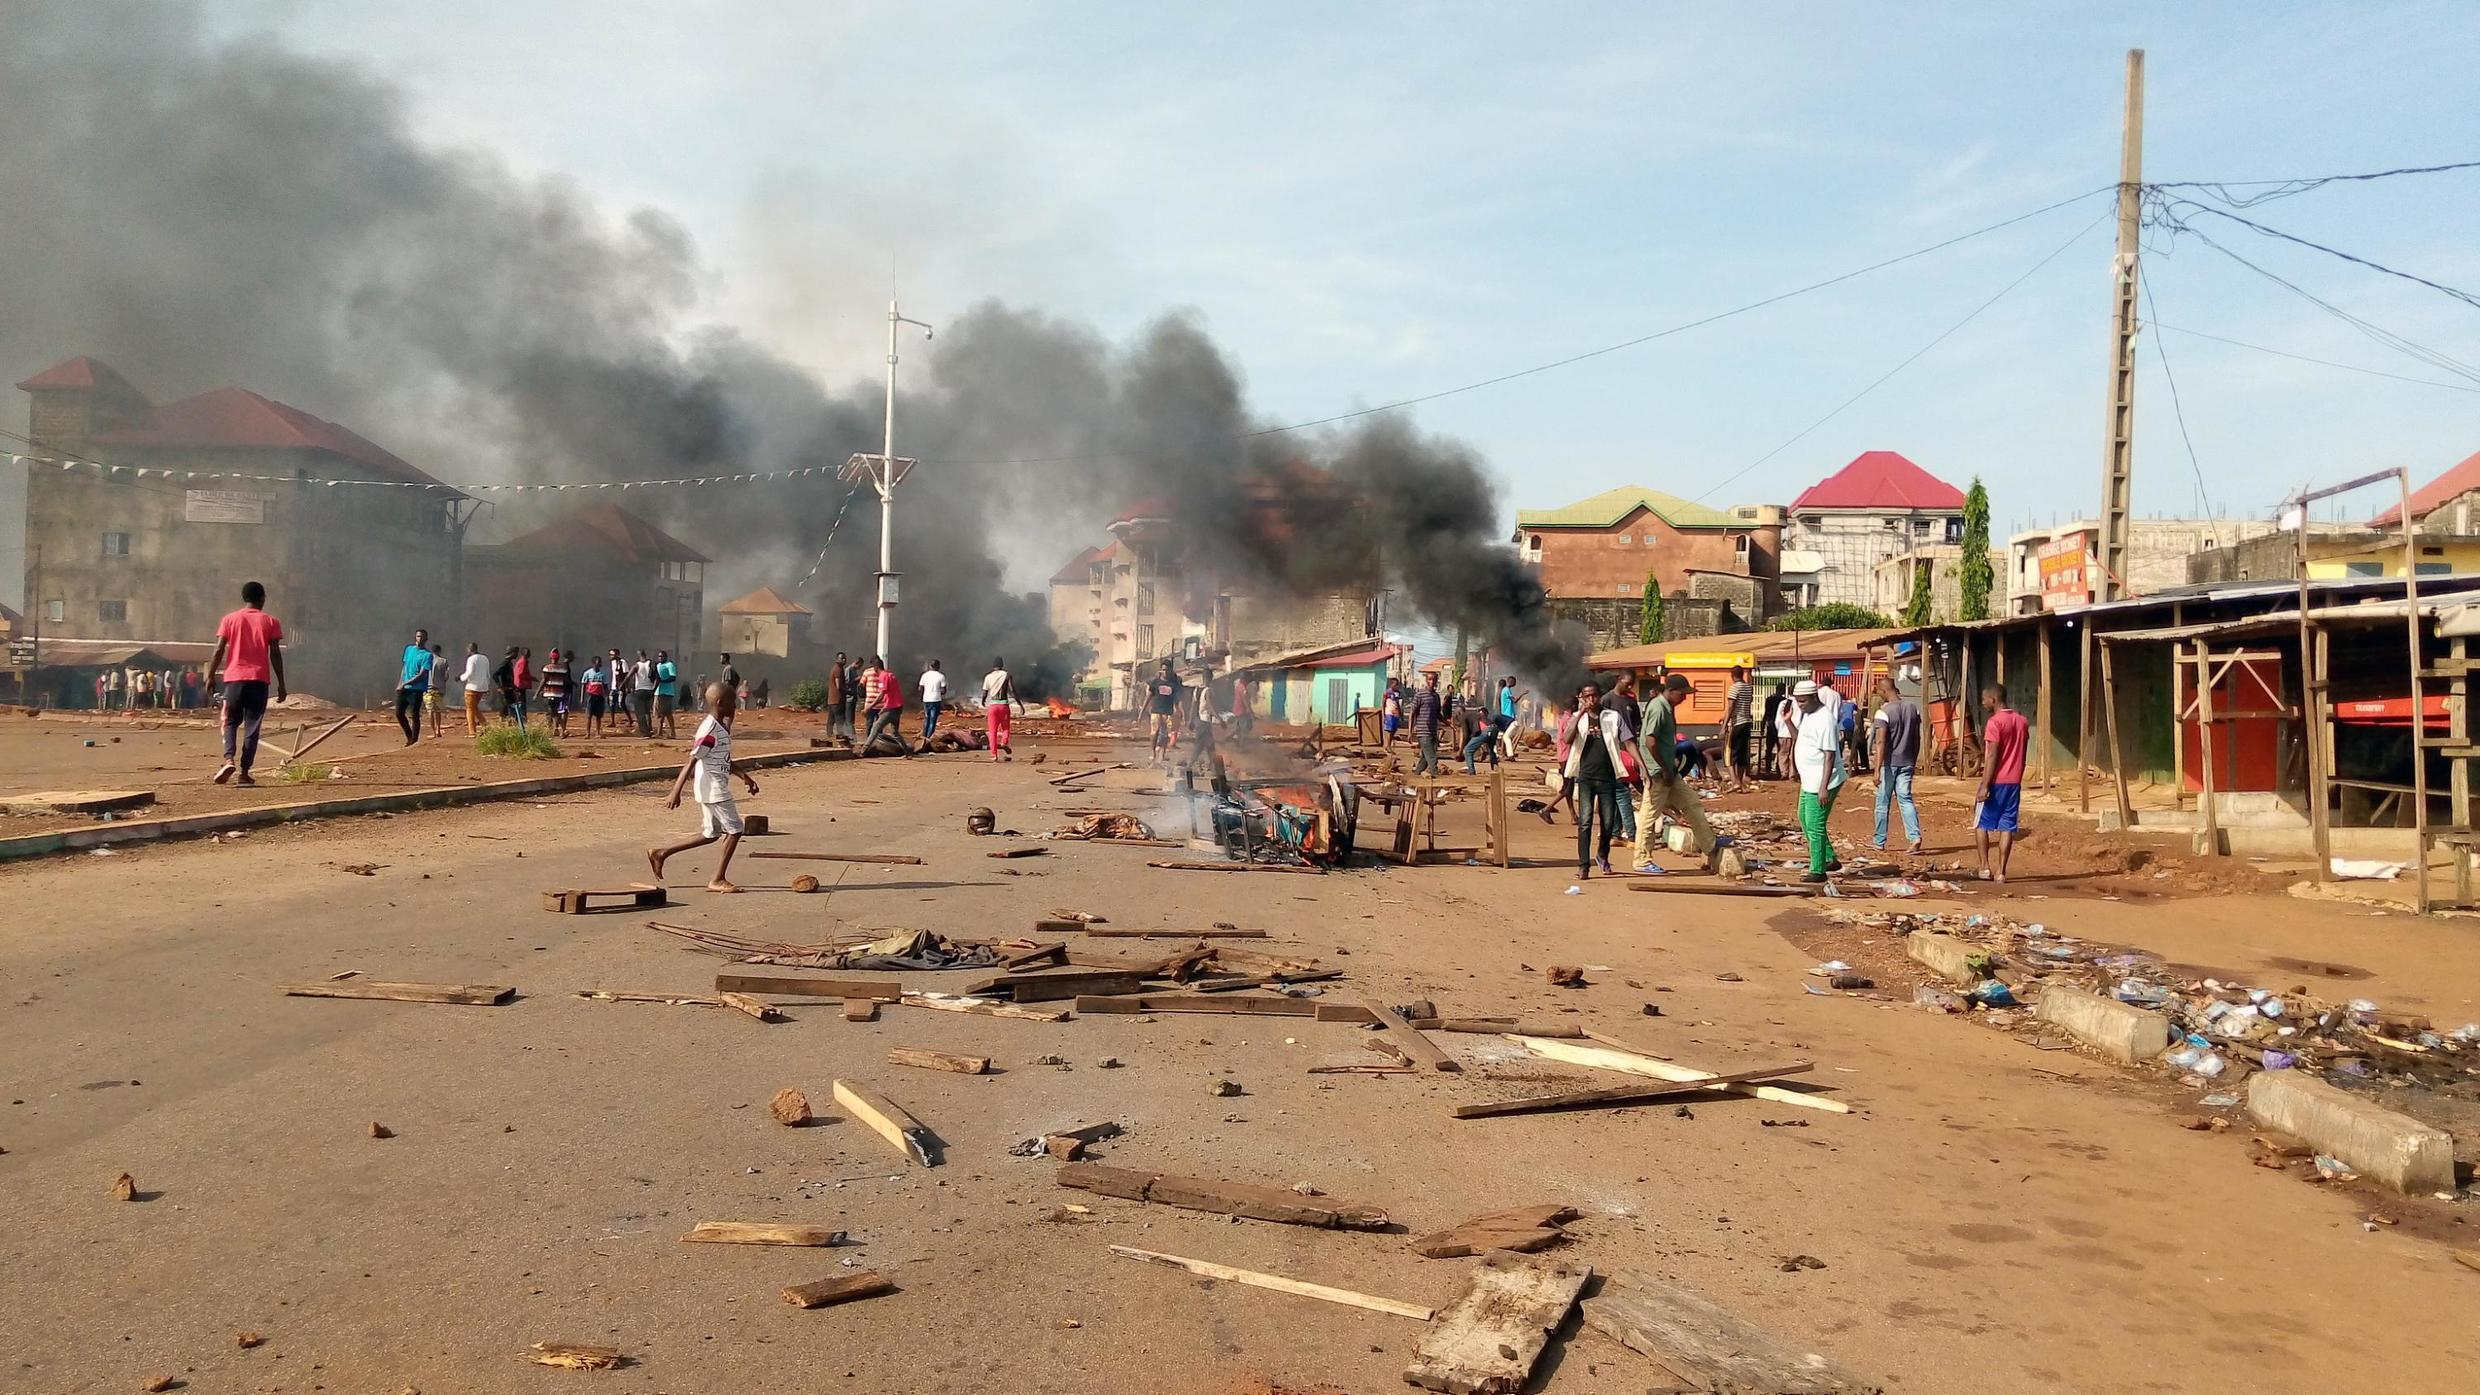 On the streets of Conakry, Guinea, on Wednesday, violence flared as the votes were tallied.